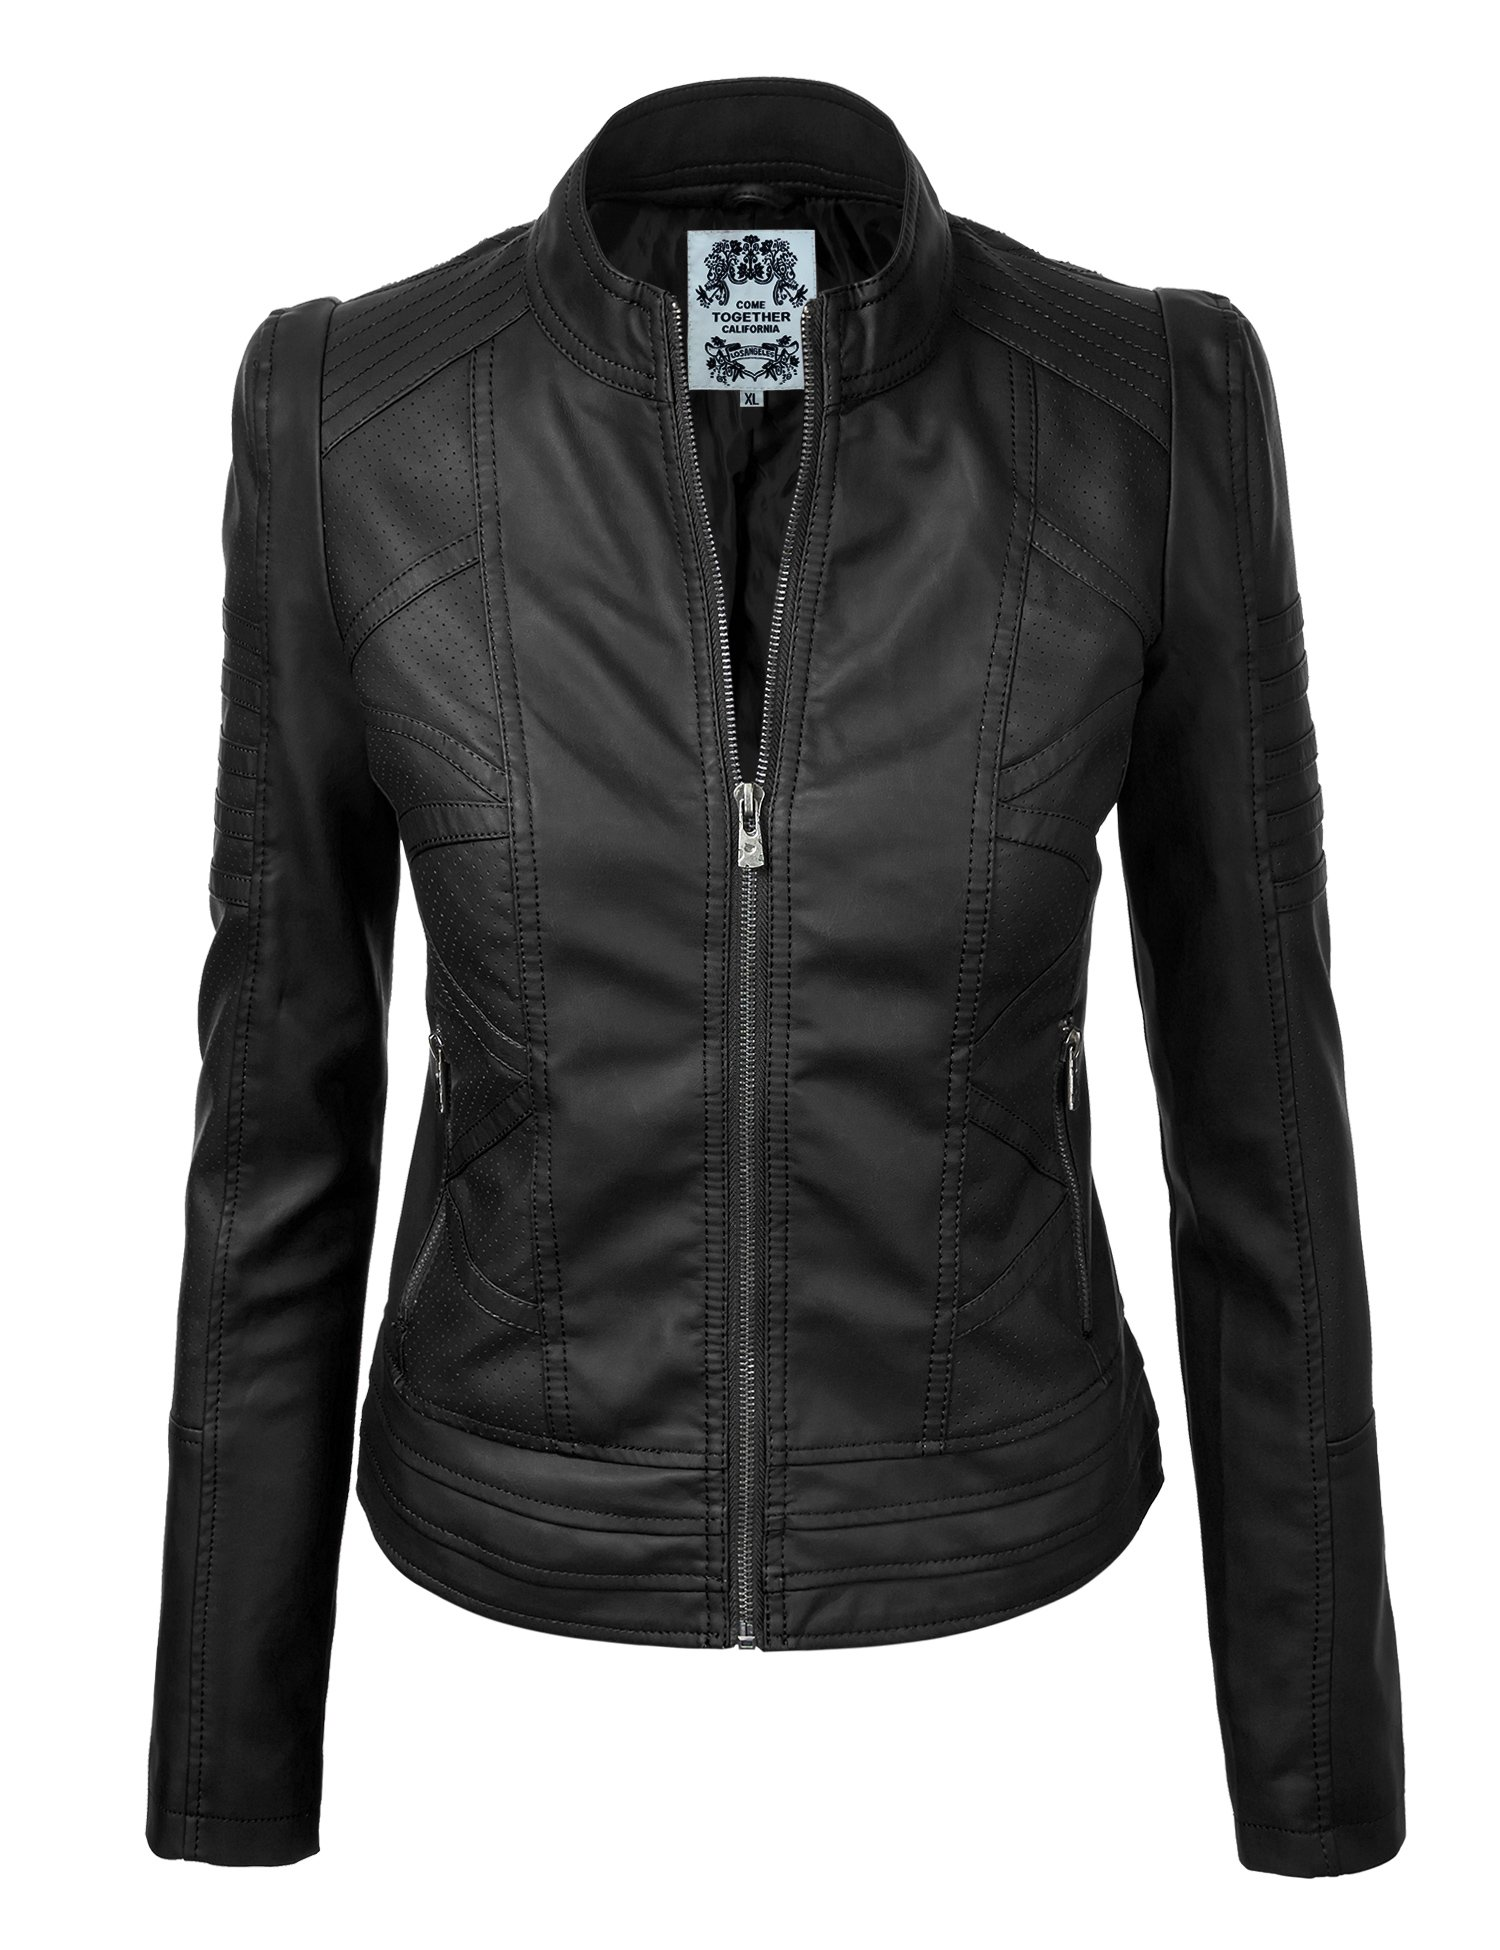 Come Together California WJC746 Womens Vegan Leather Motorcycle Jacket XS Black